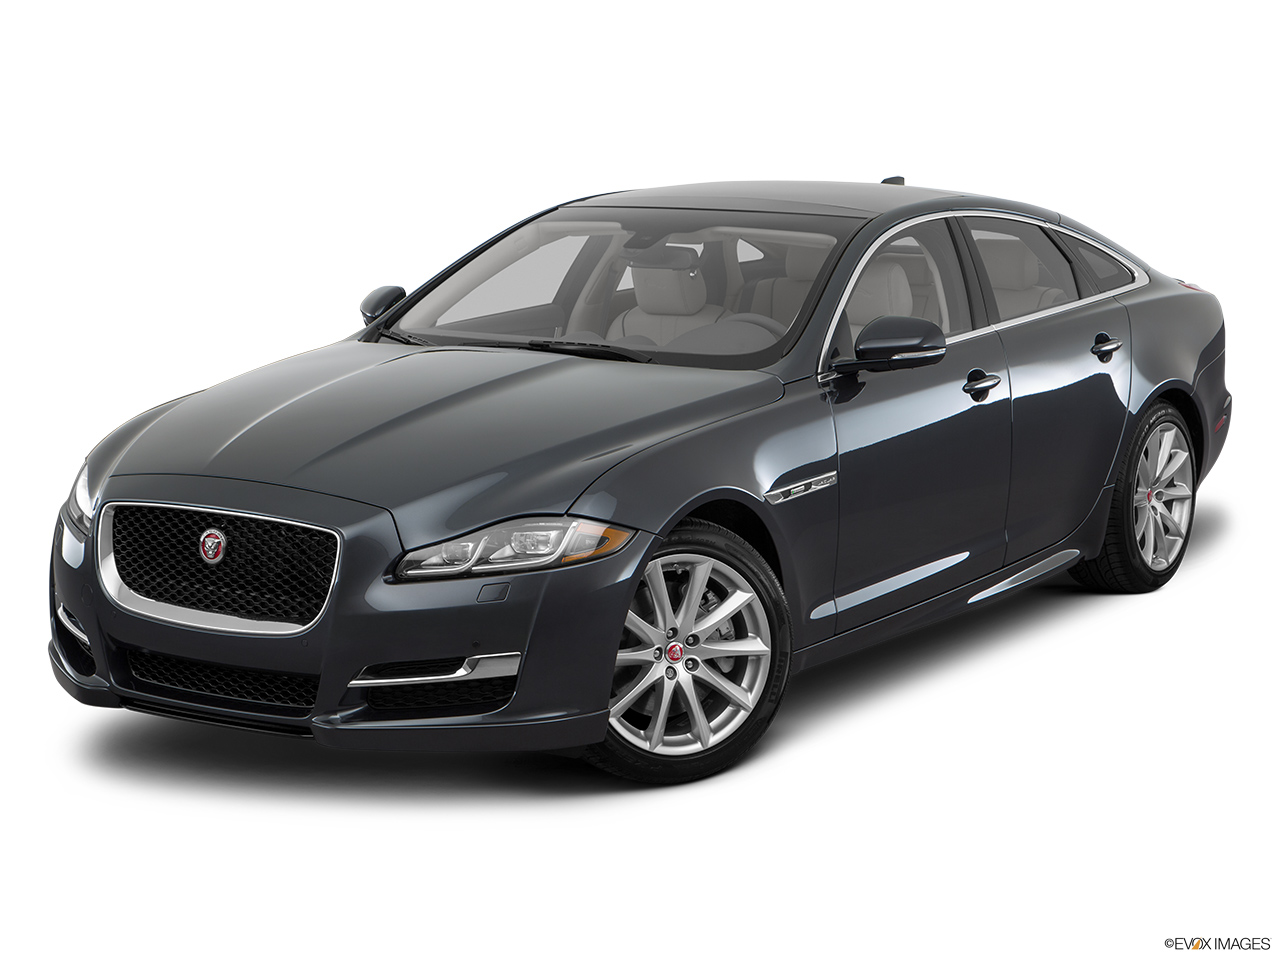 2018 jaguar xj prices in uae gulf specs reviews for dubai abu dhabi and sharjah yallamotor. Black Bedroom Furniture Sets. Home Design Ideas